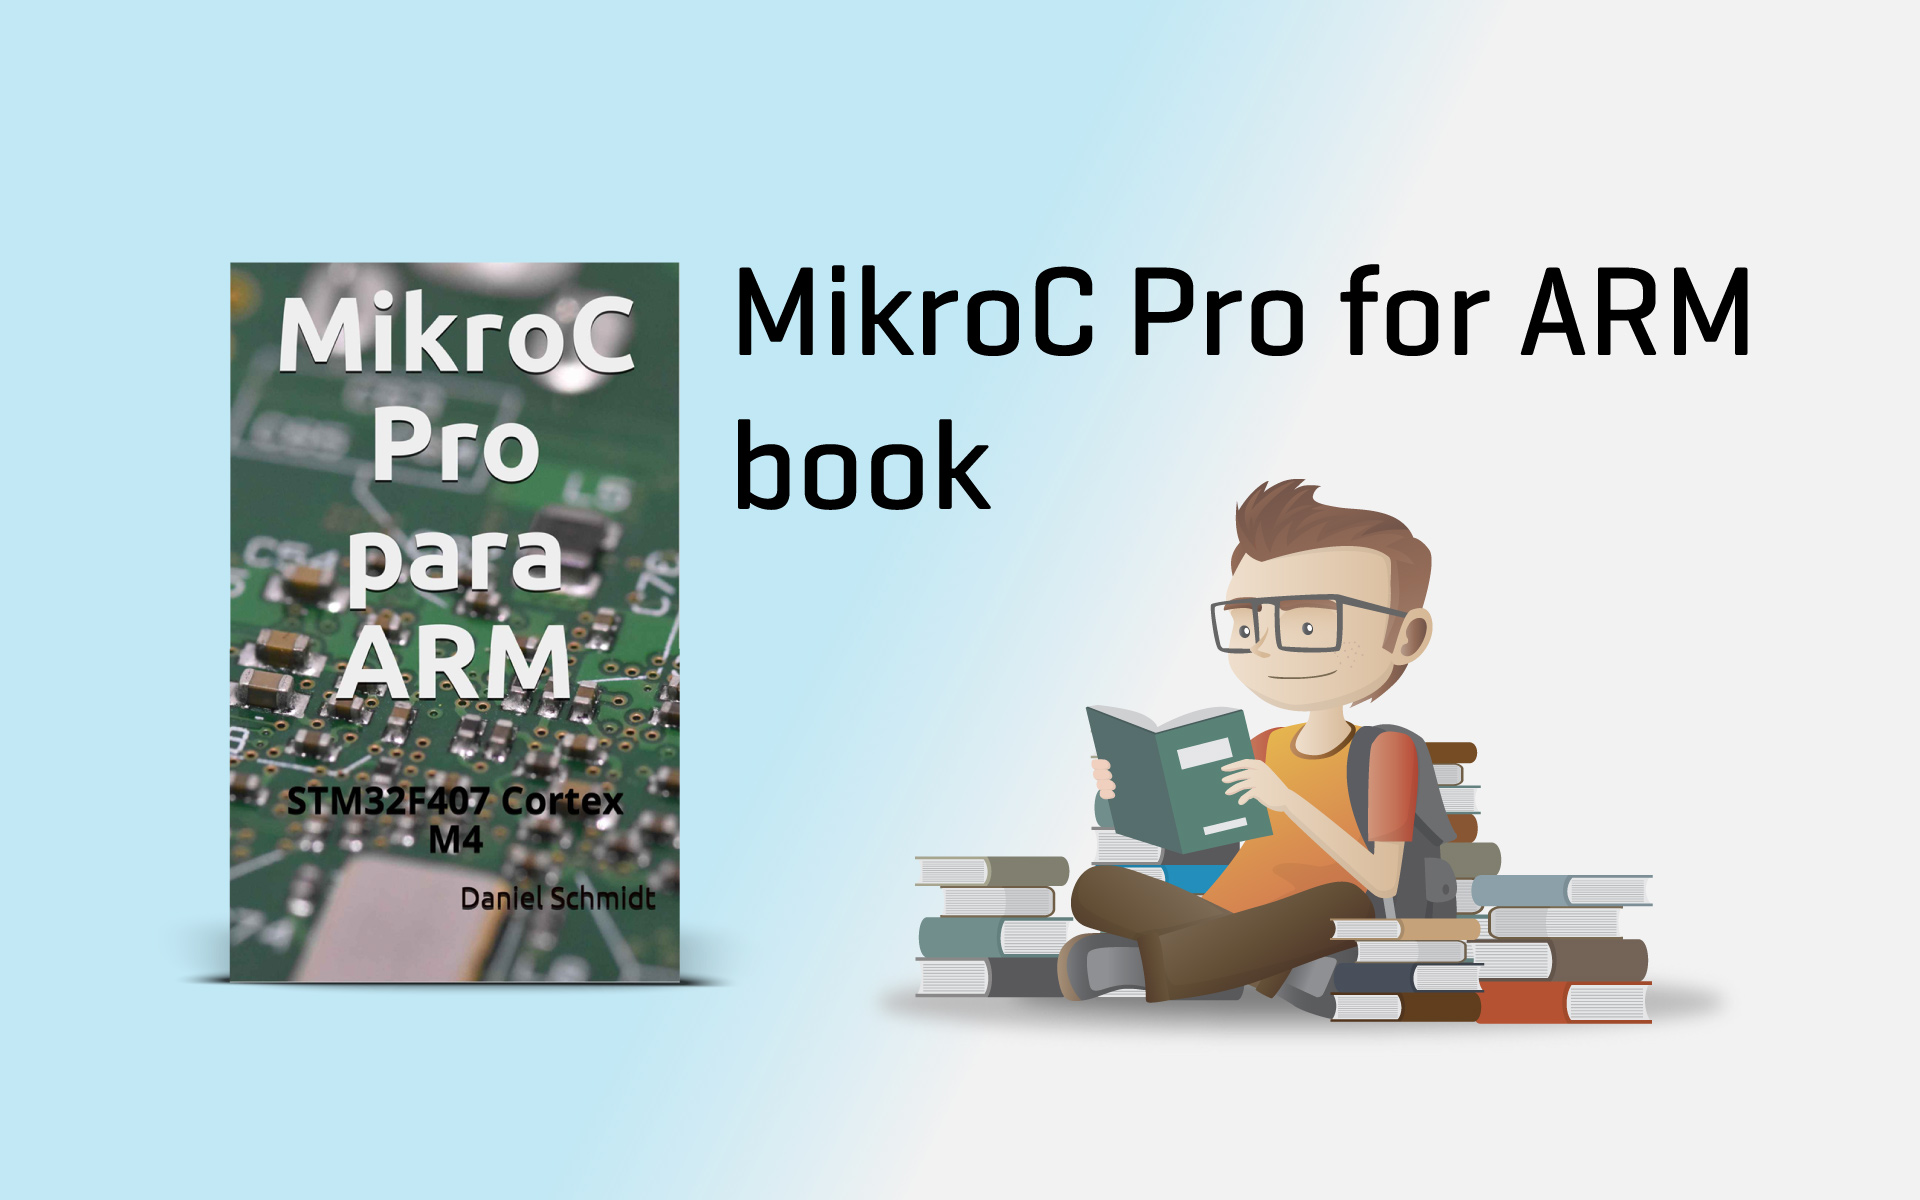 A book about mikroC PRO for ARM compiler in Spanish